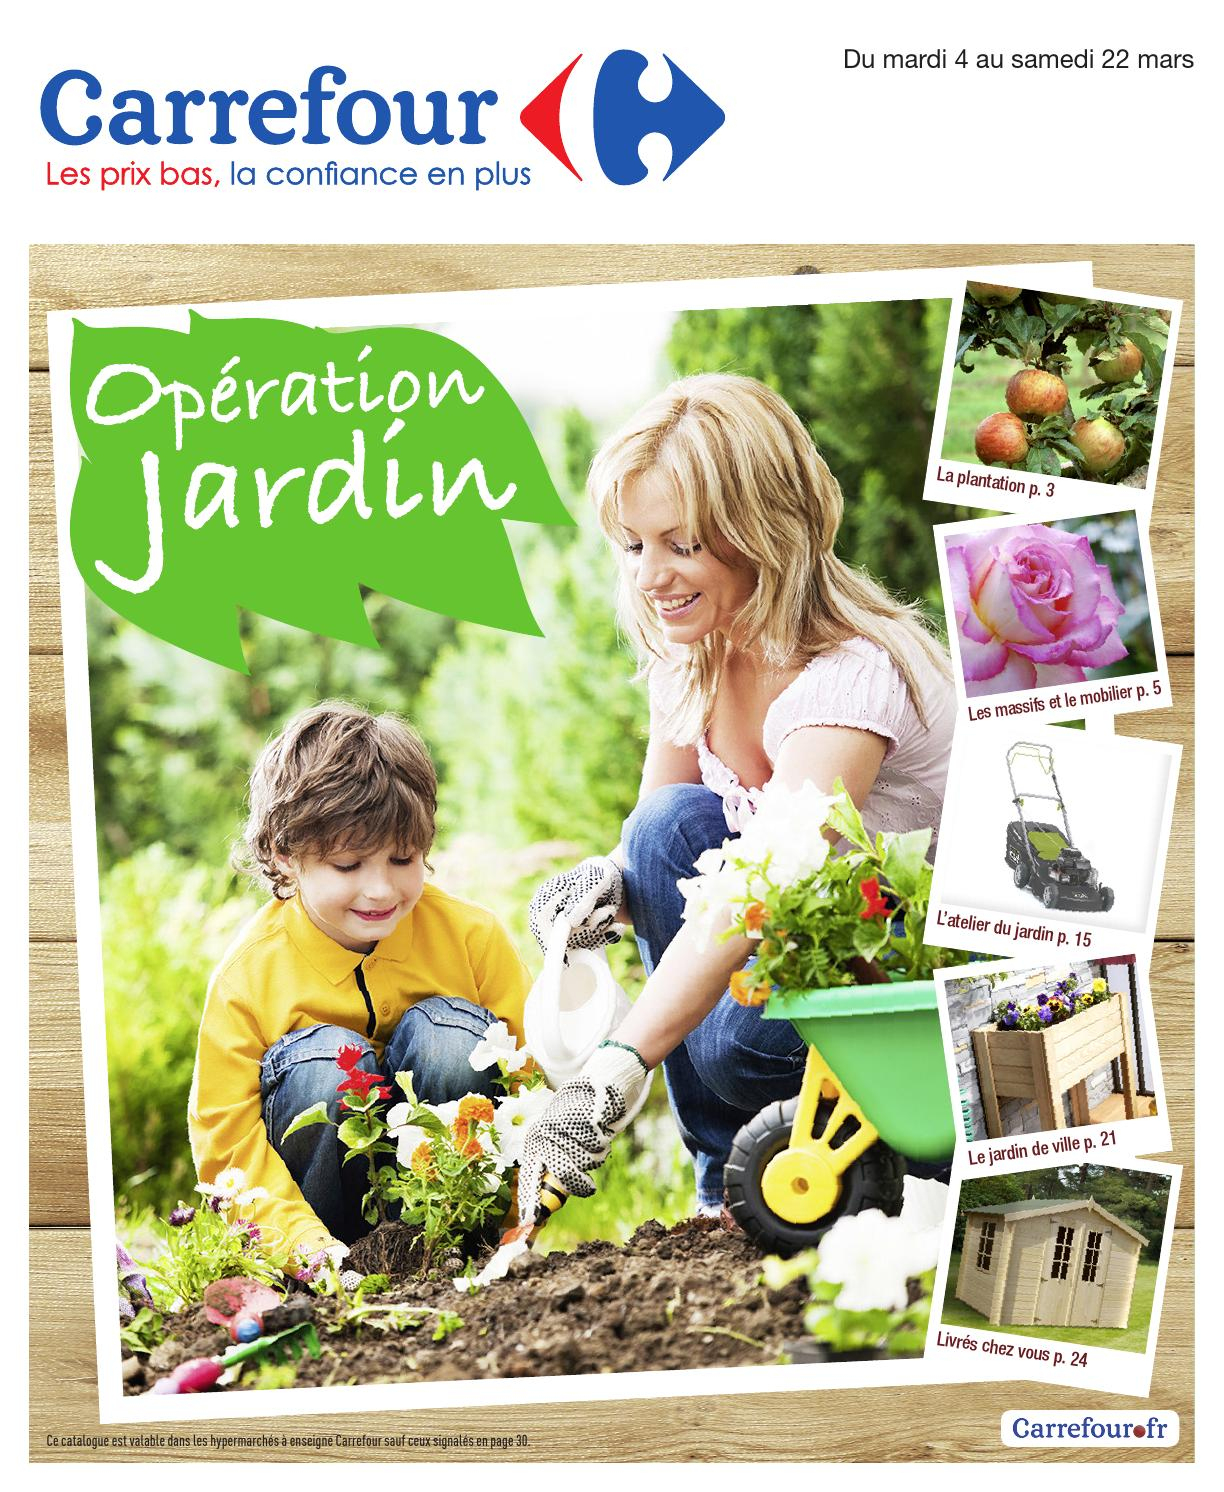 Catalogue Carrefour - 4-22.03.2014 By Joe Monroe - Issuu avec Carrefour Chalet De Jardin